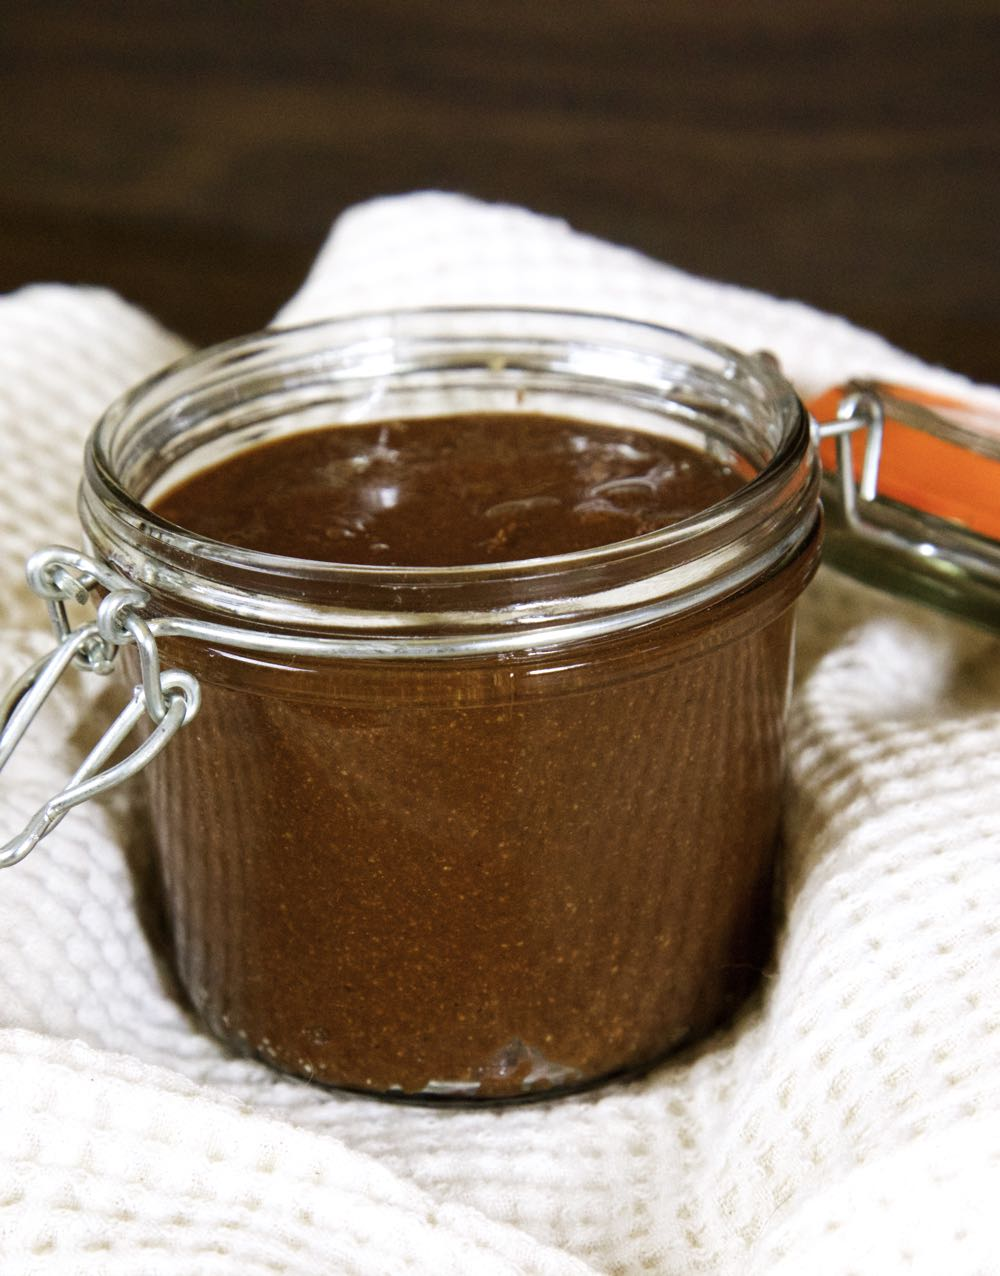 Homemade vegan Nutella in a glass jar.